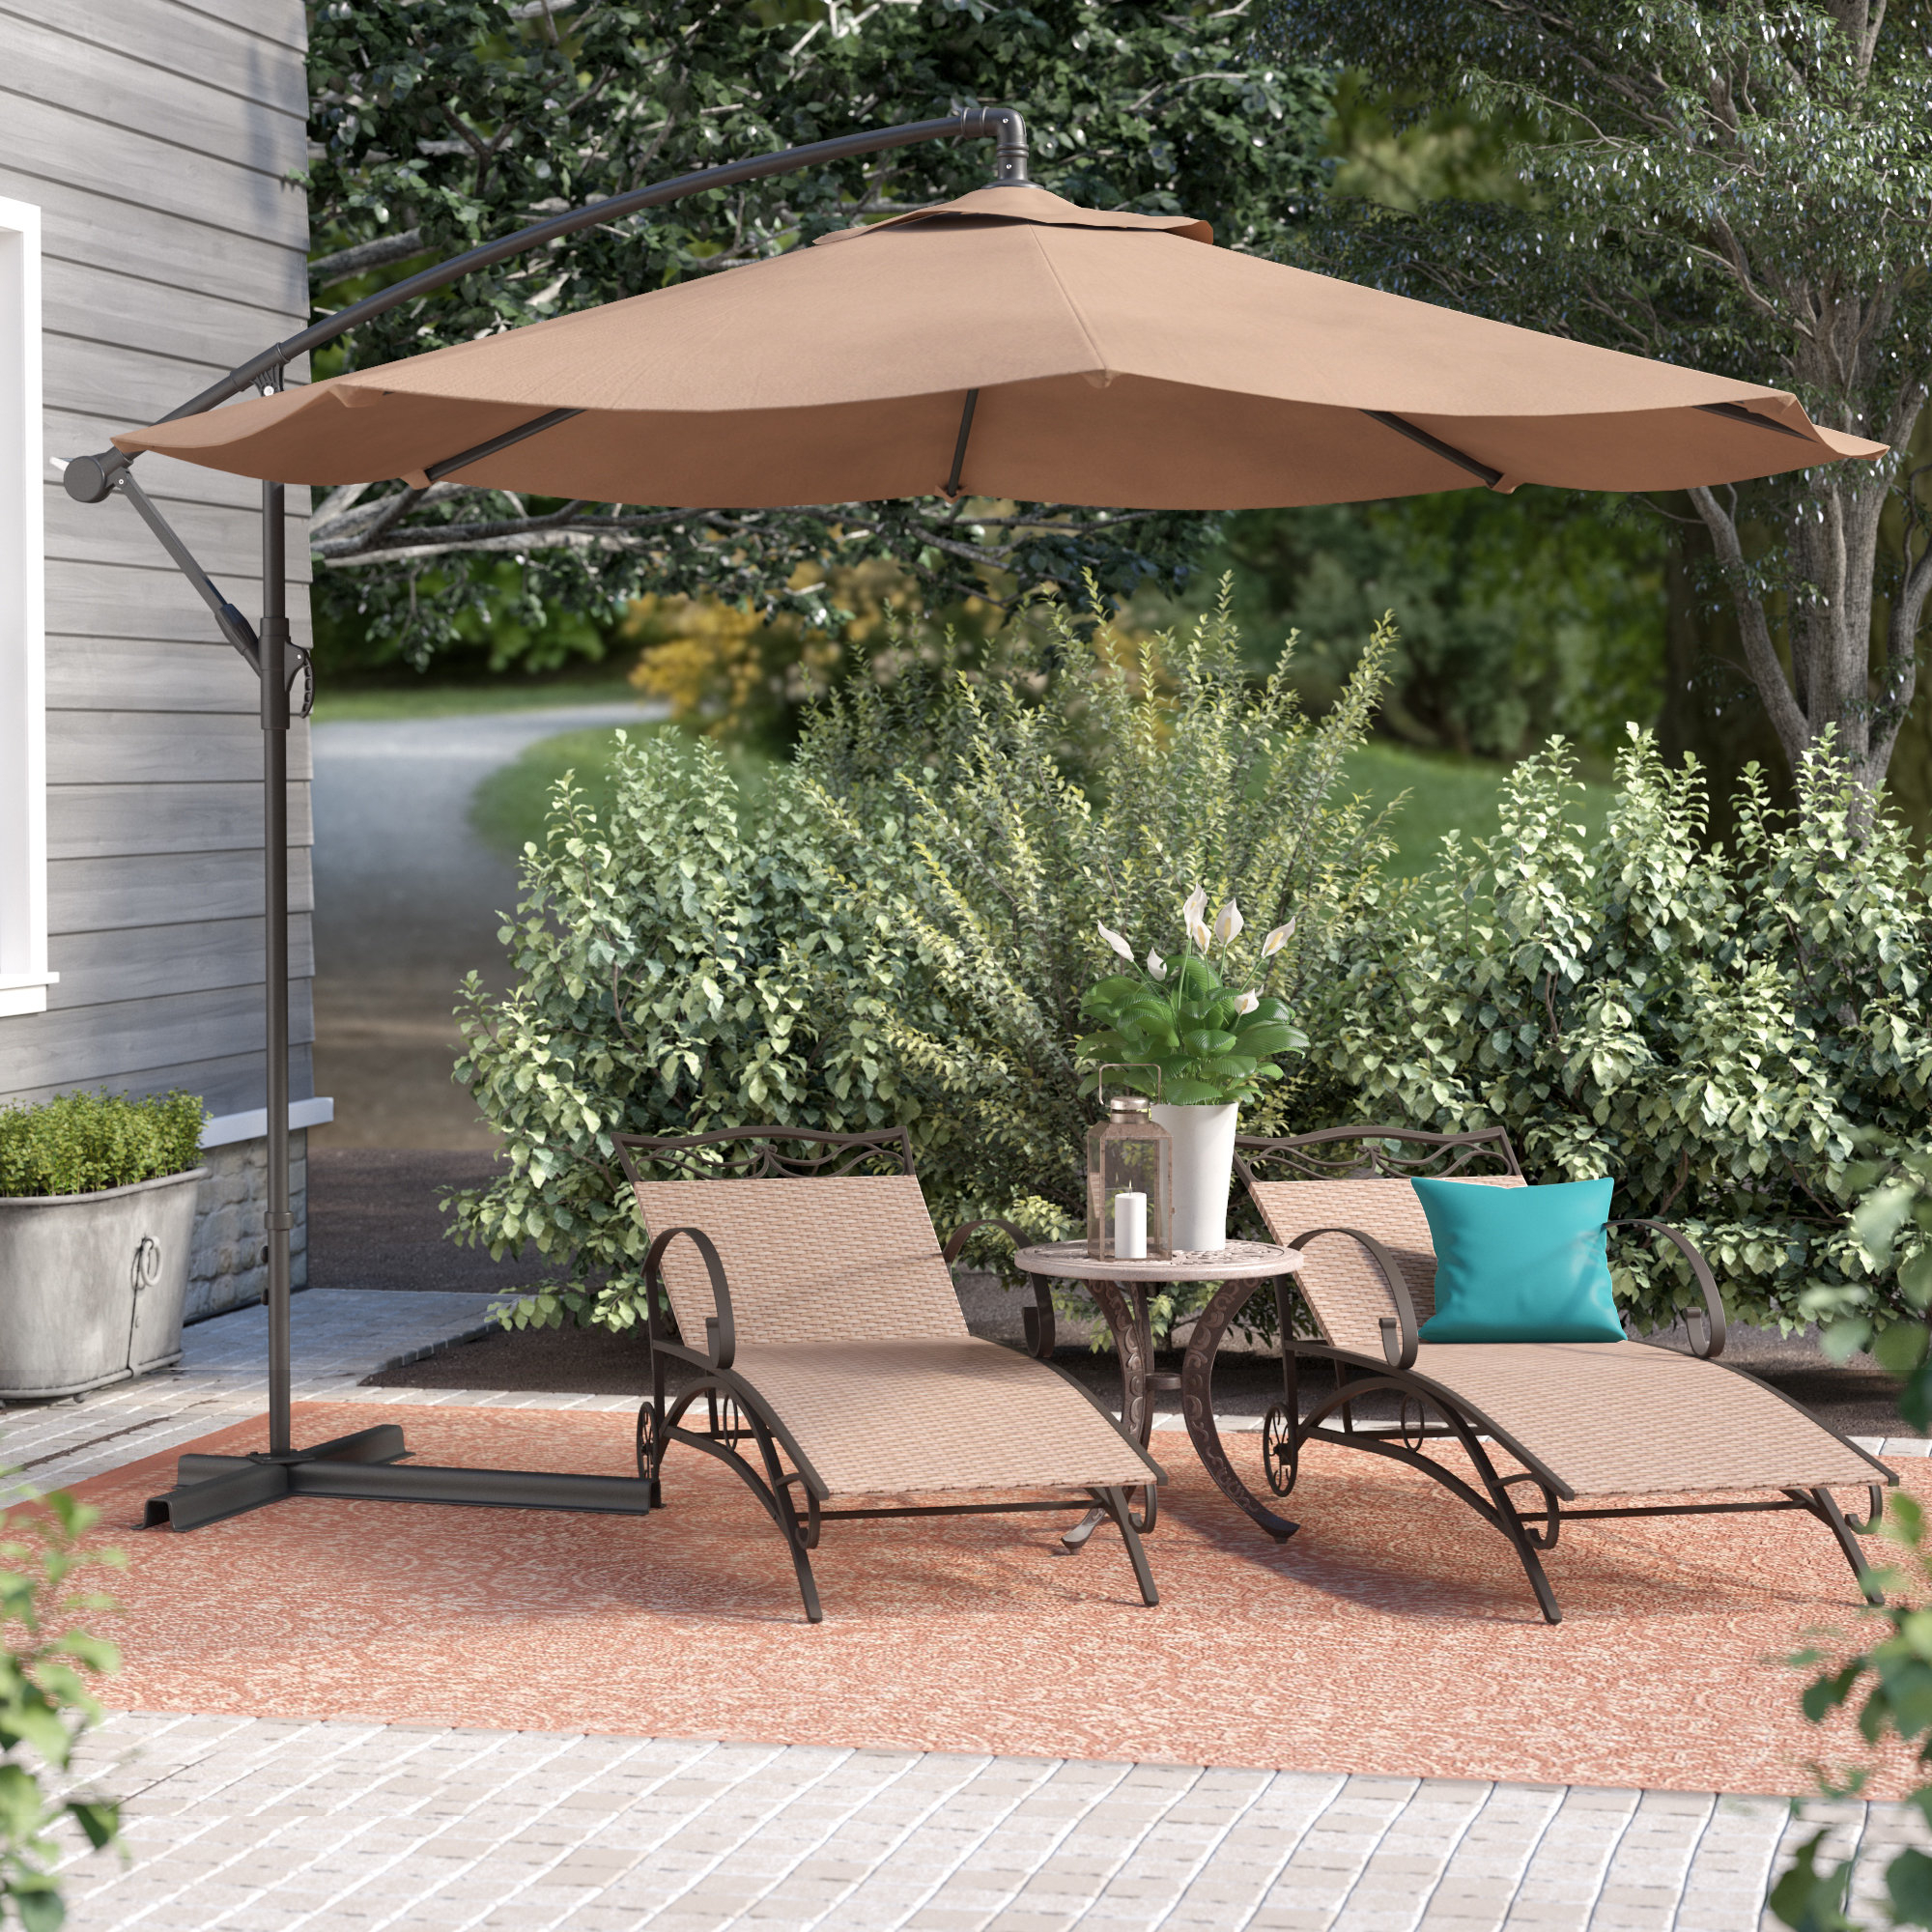 Wayfair With Popular Bricker Market Umbrellas (View 18 of 20)